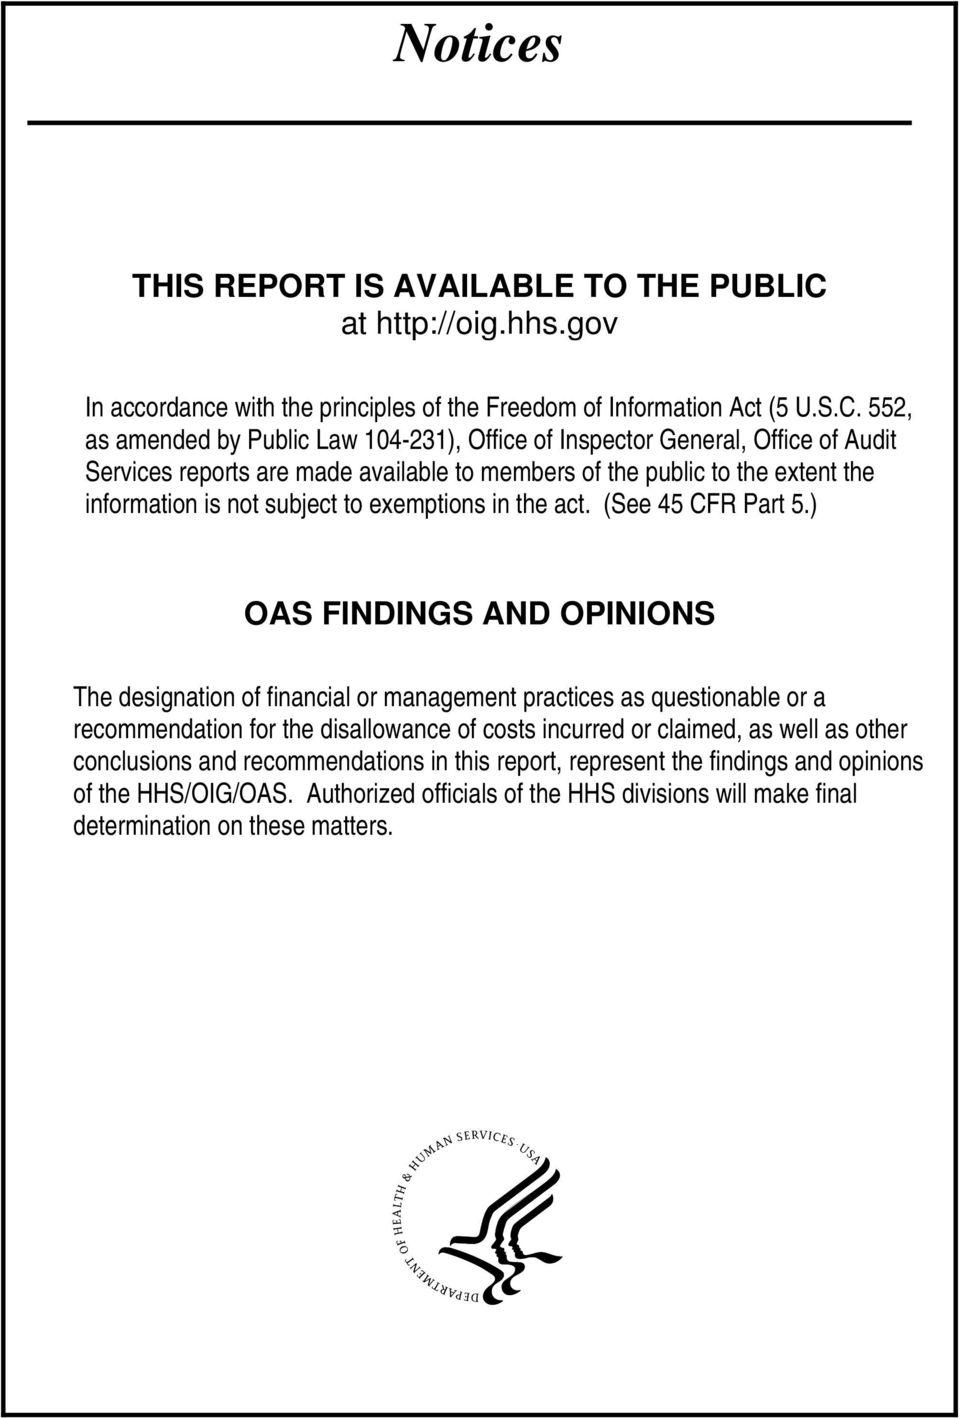 552, as amended by Public Law 104-231), Office of Inspector General, Office of Audit Services reports are made available to members of the public to the extent the information is not subject